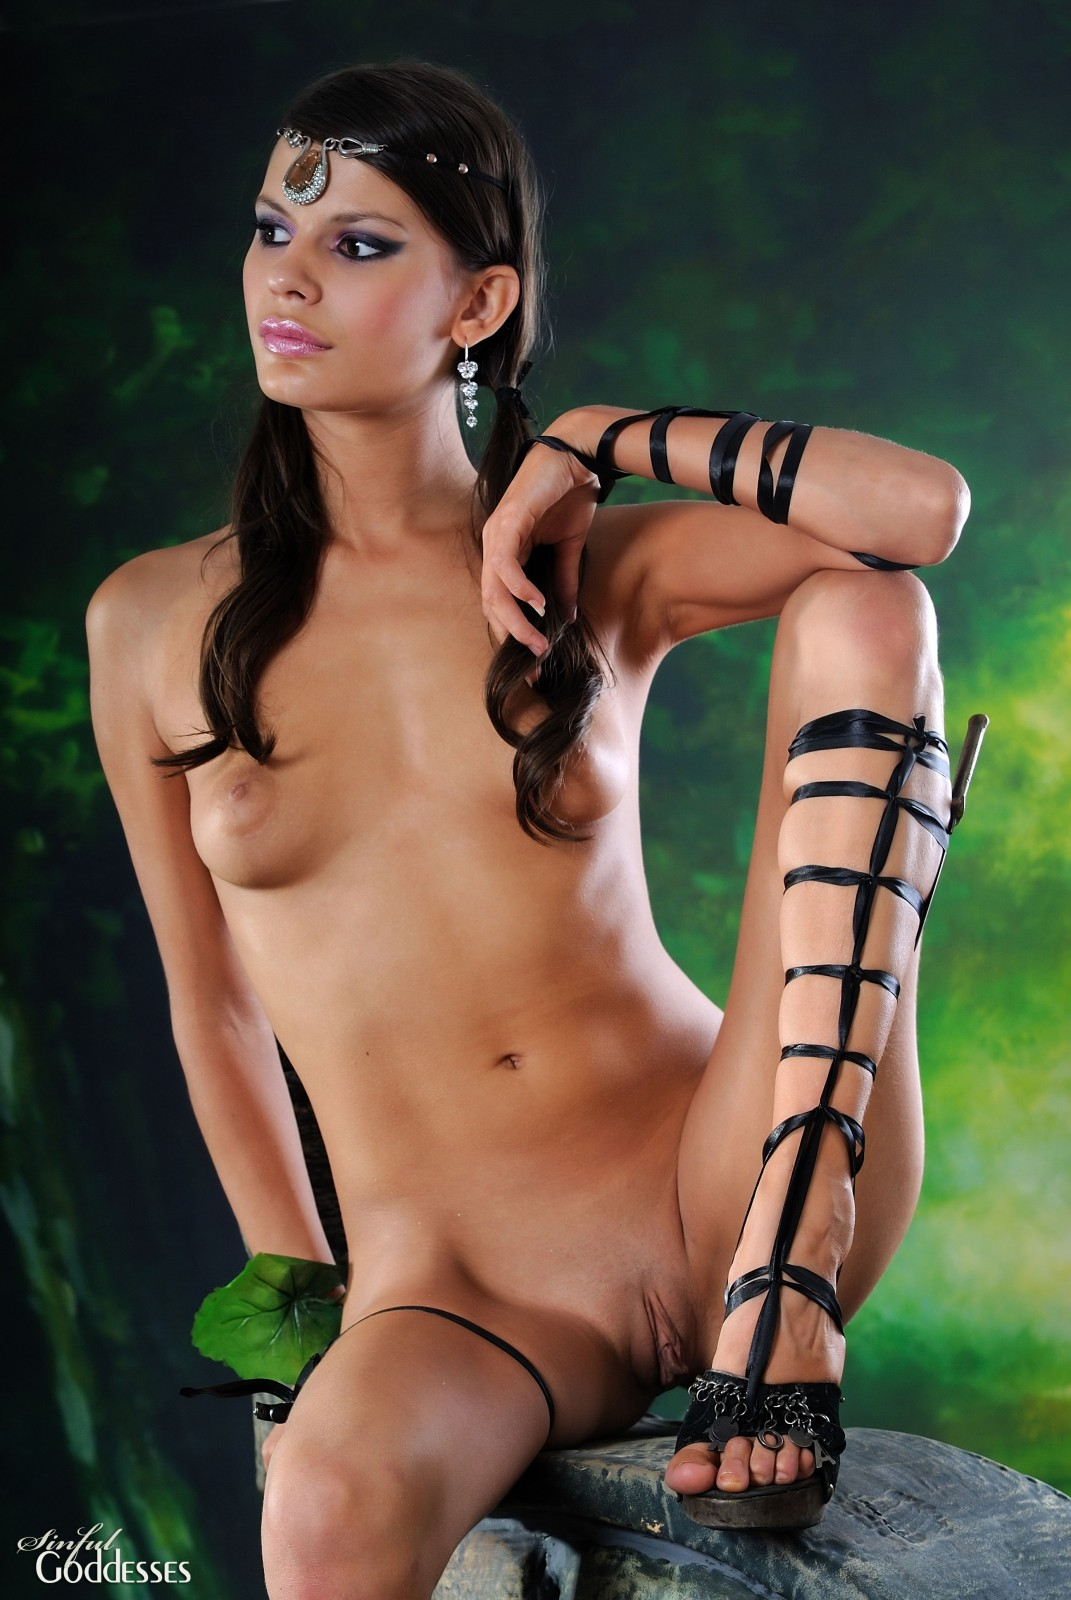 Nude male warrior fantasy photos hentai female